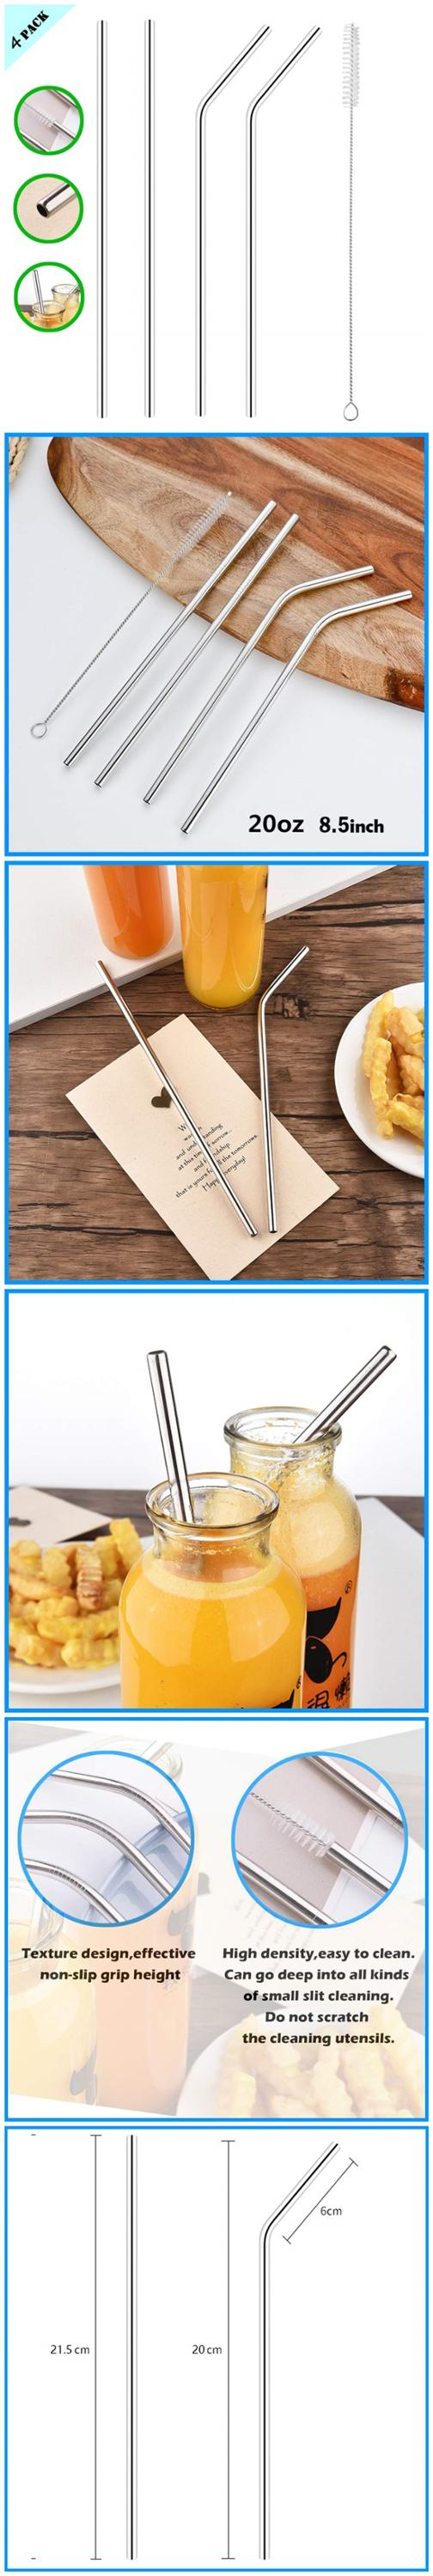 Reusable Portable Stainless Steel Metal Straw Set Of 4 Pack